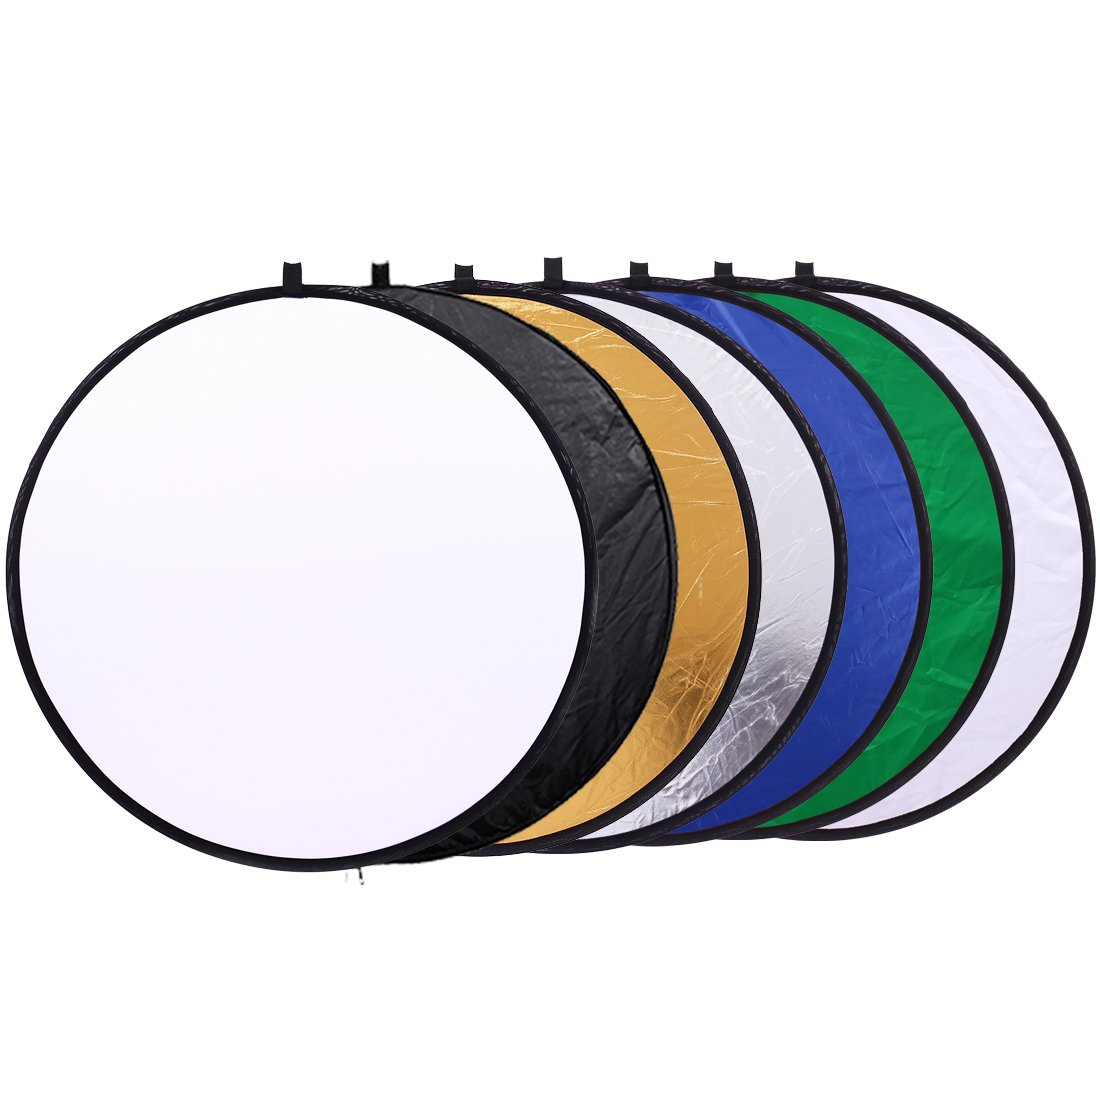 43 inch (110cm) Round Collapsible Light Reflectors for Photography 7 in 1 Portable Sun Reflector for Studio Multi Photo Disc White,Blue,Green,Gold,Silver,and Black by Konseen